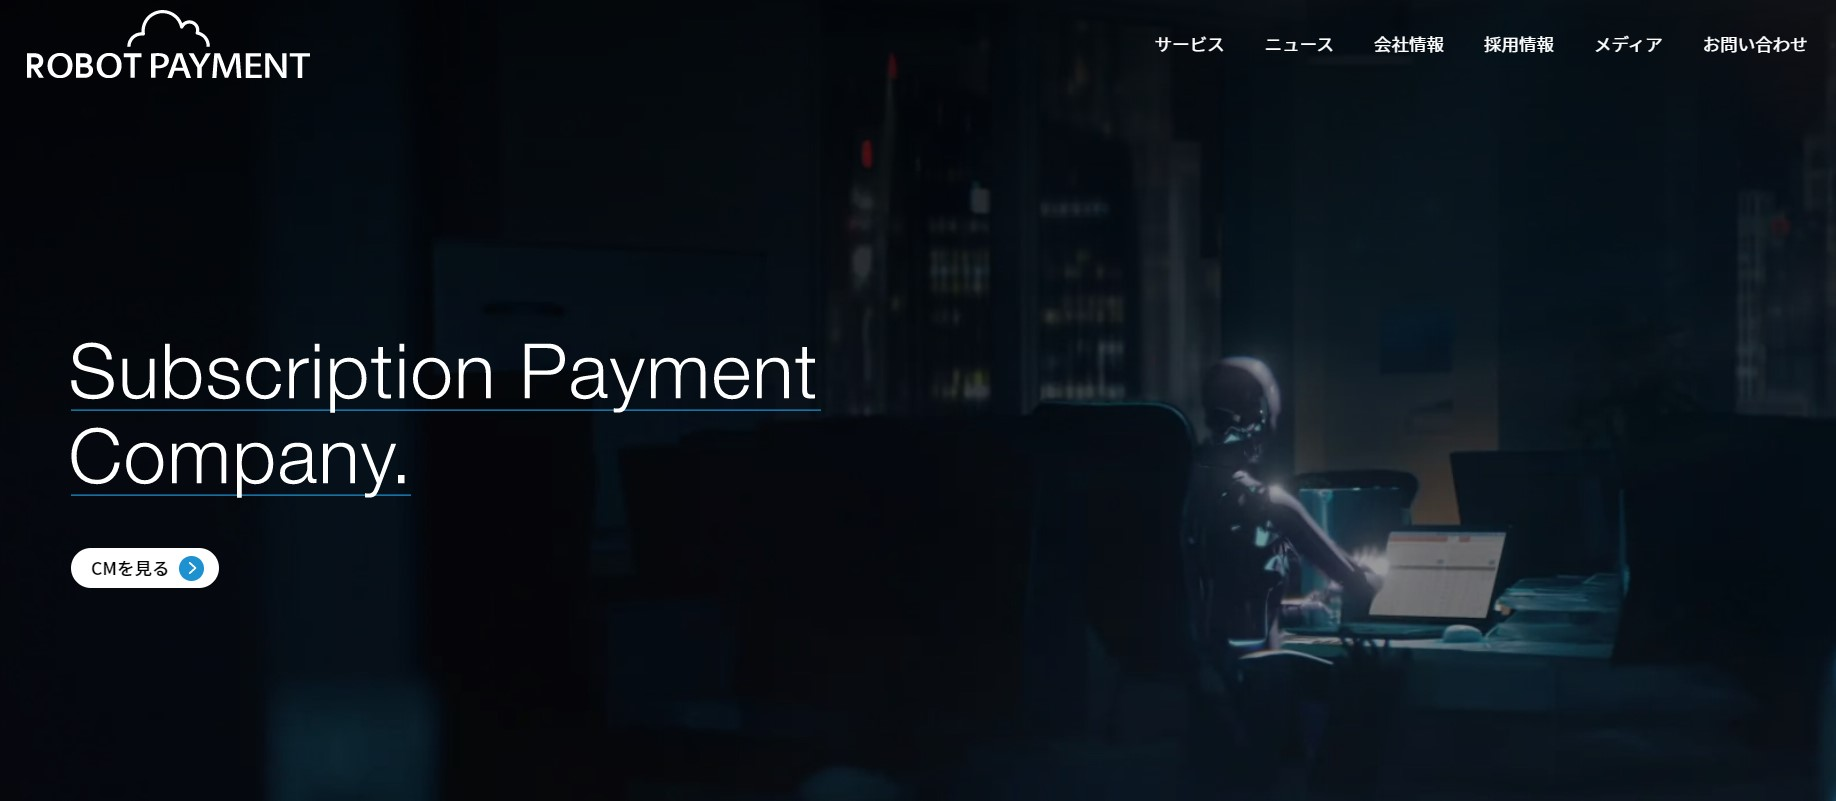 ROBOT PAYMENT(4374)IPO